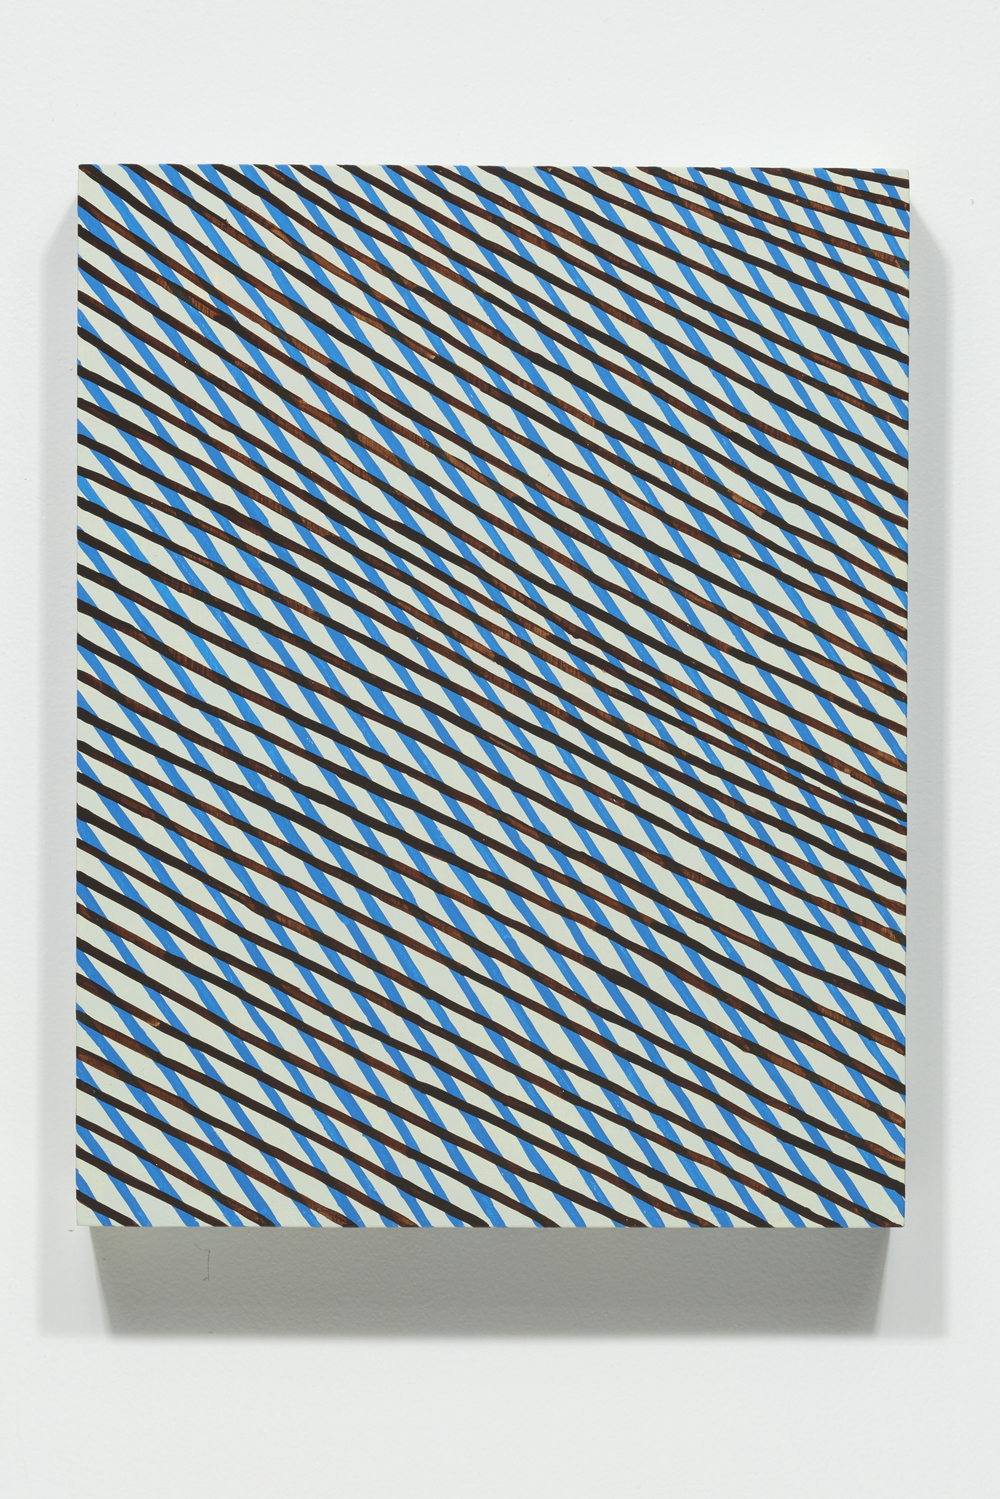 Mel Prest, Blue Falling Diamonds, 2014, acrylic on panel, 14 x 11 x 2 inches